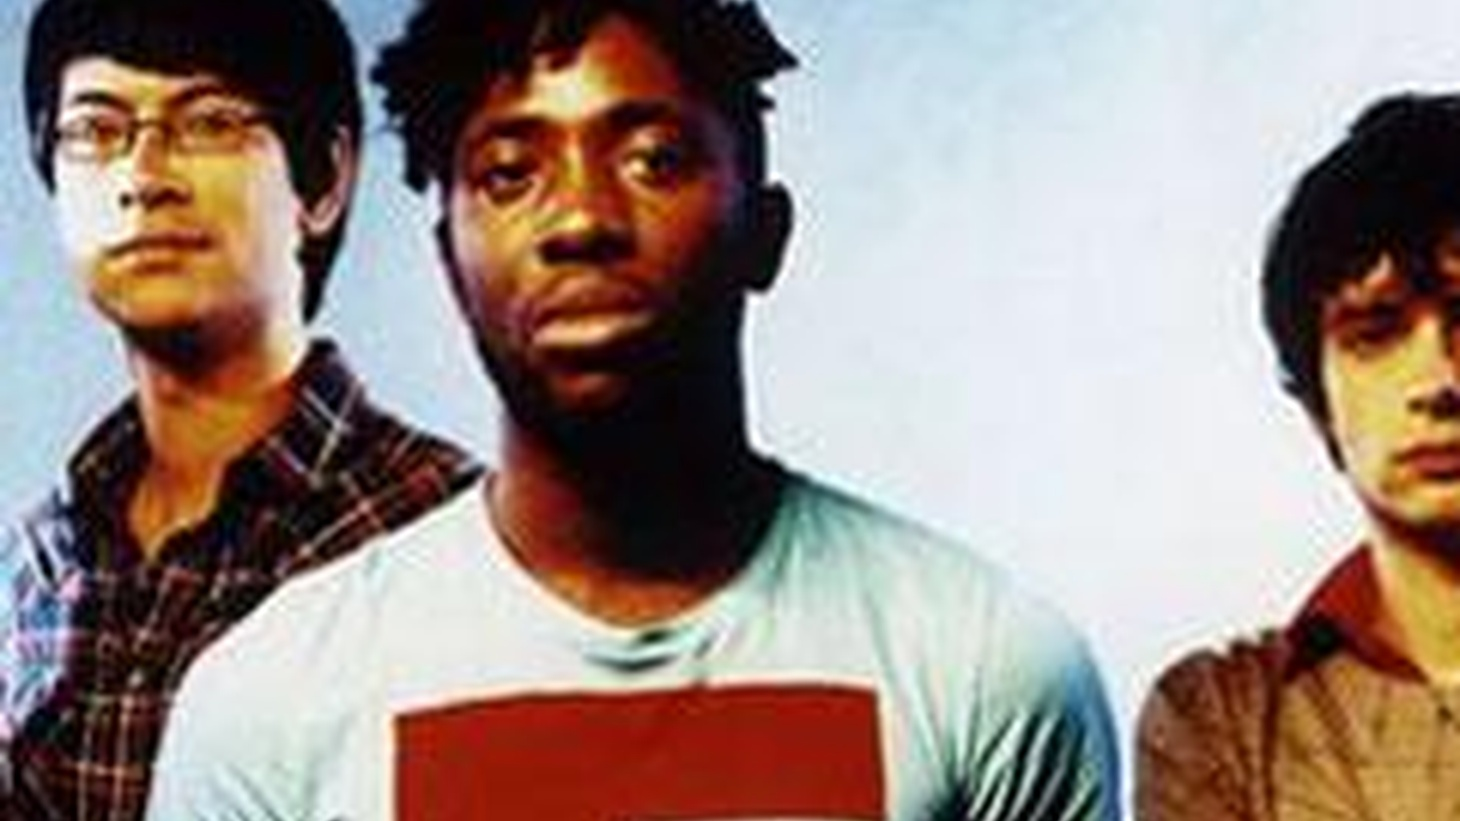 Bloc Party kick out the jams on Morning Becomes Eclectic at 11:15am.